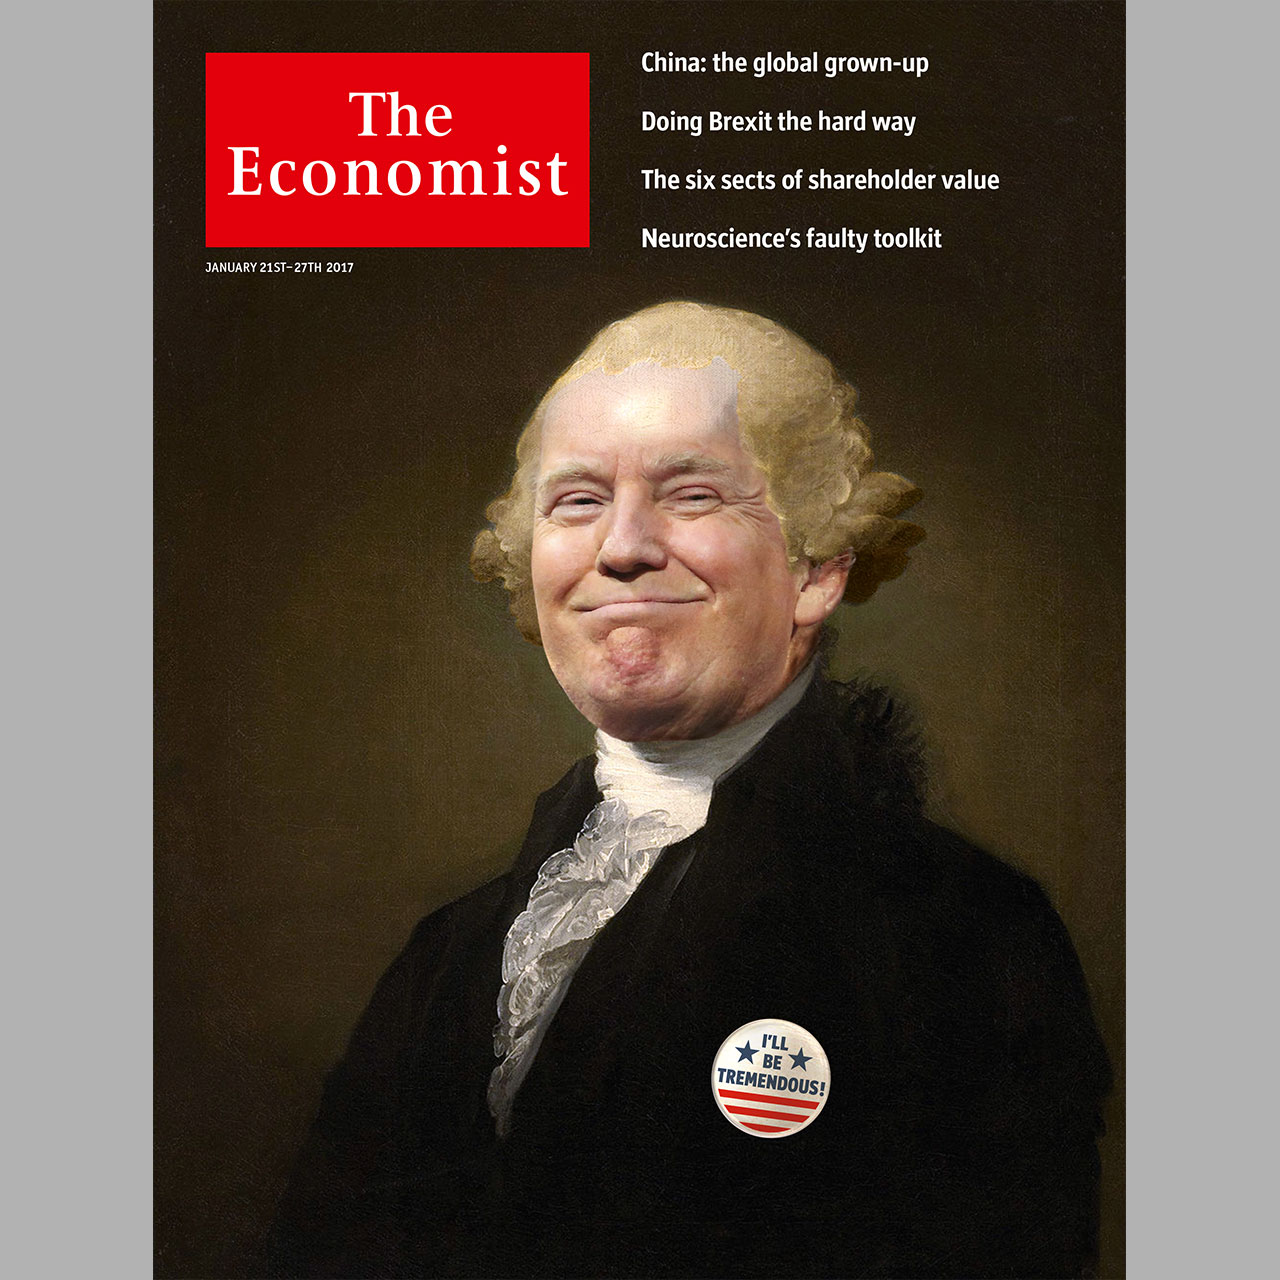 President Trump's first year, through The Economist's covers